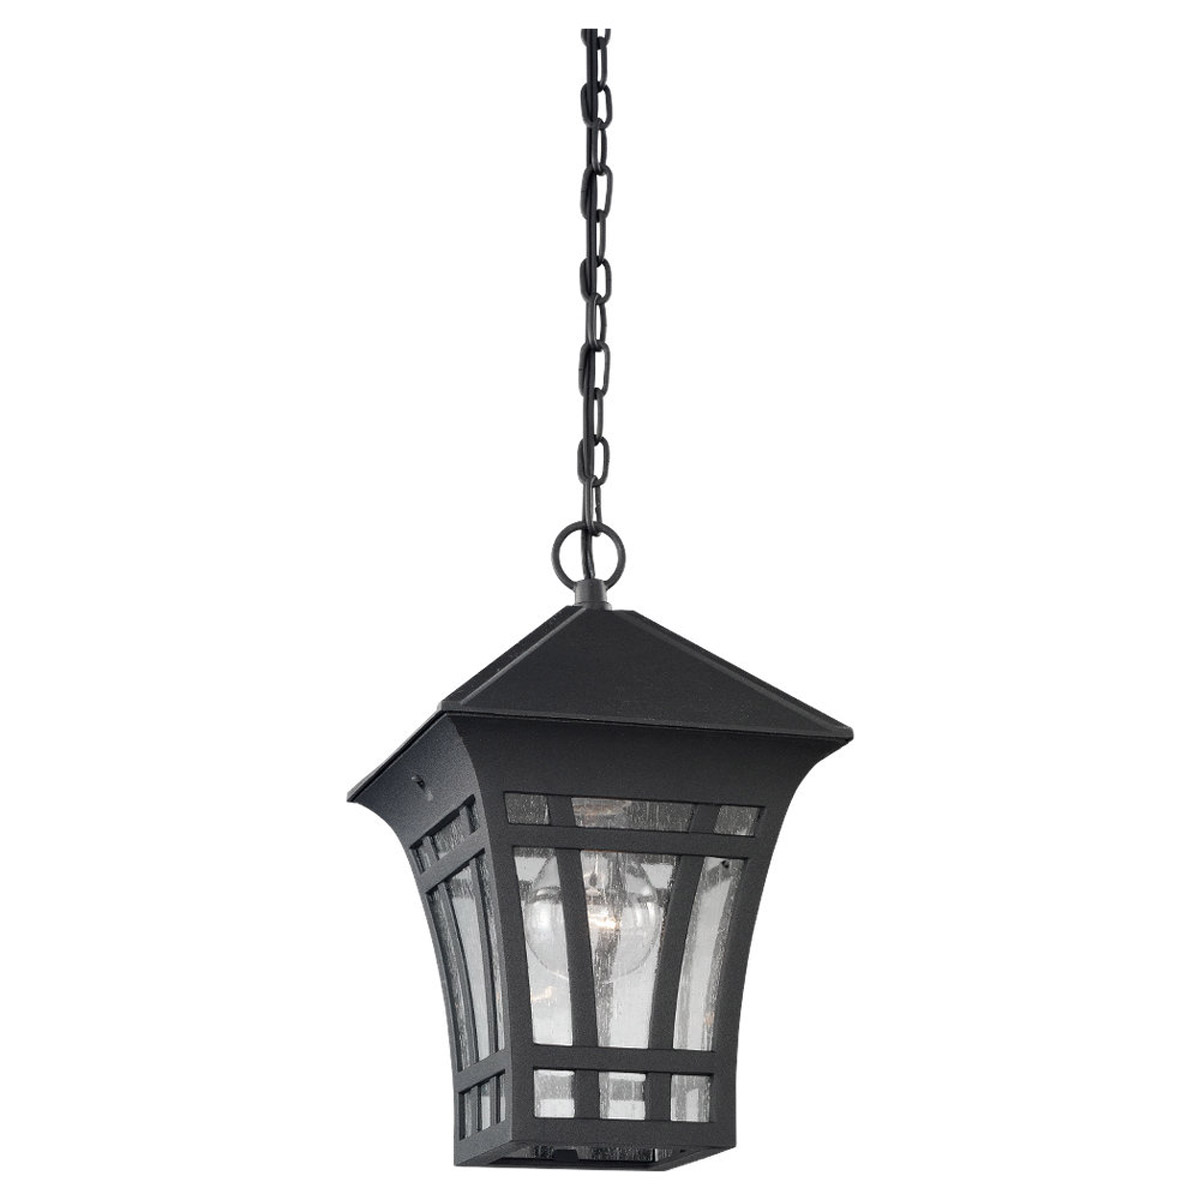 Sea Gull Lighting Herrington 1 Light Outdoor Pendant in Black 60131-12